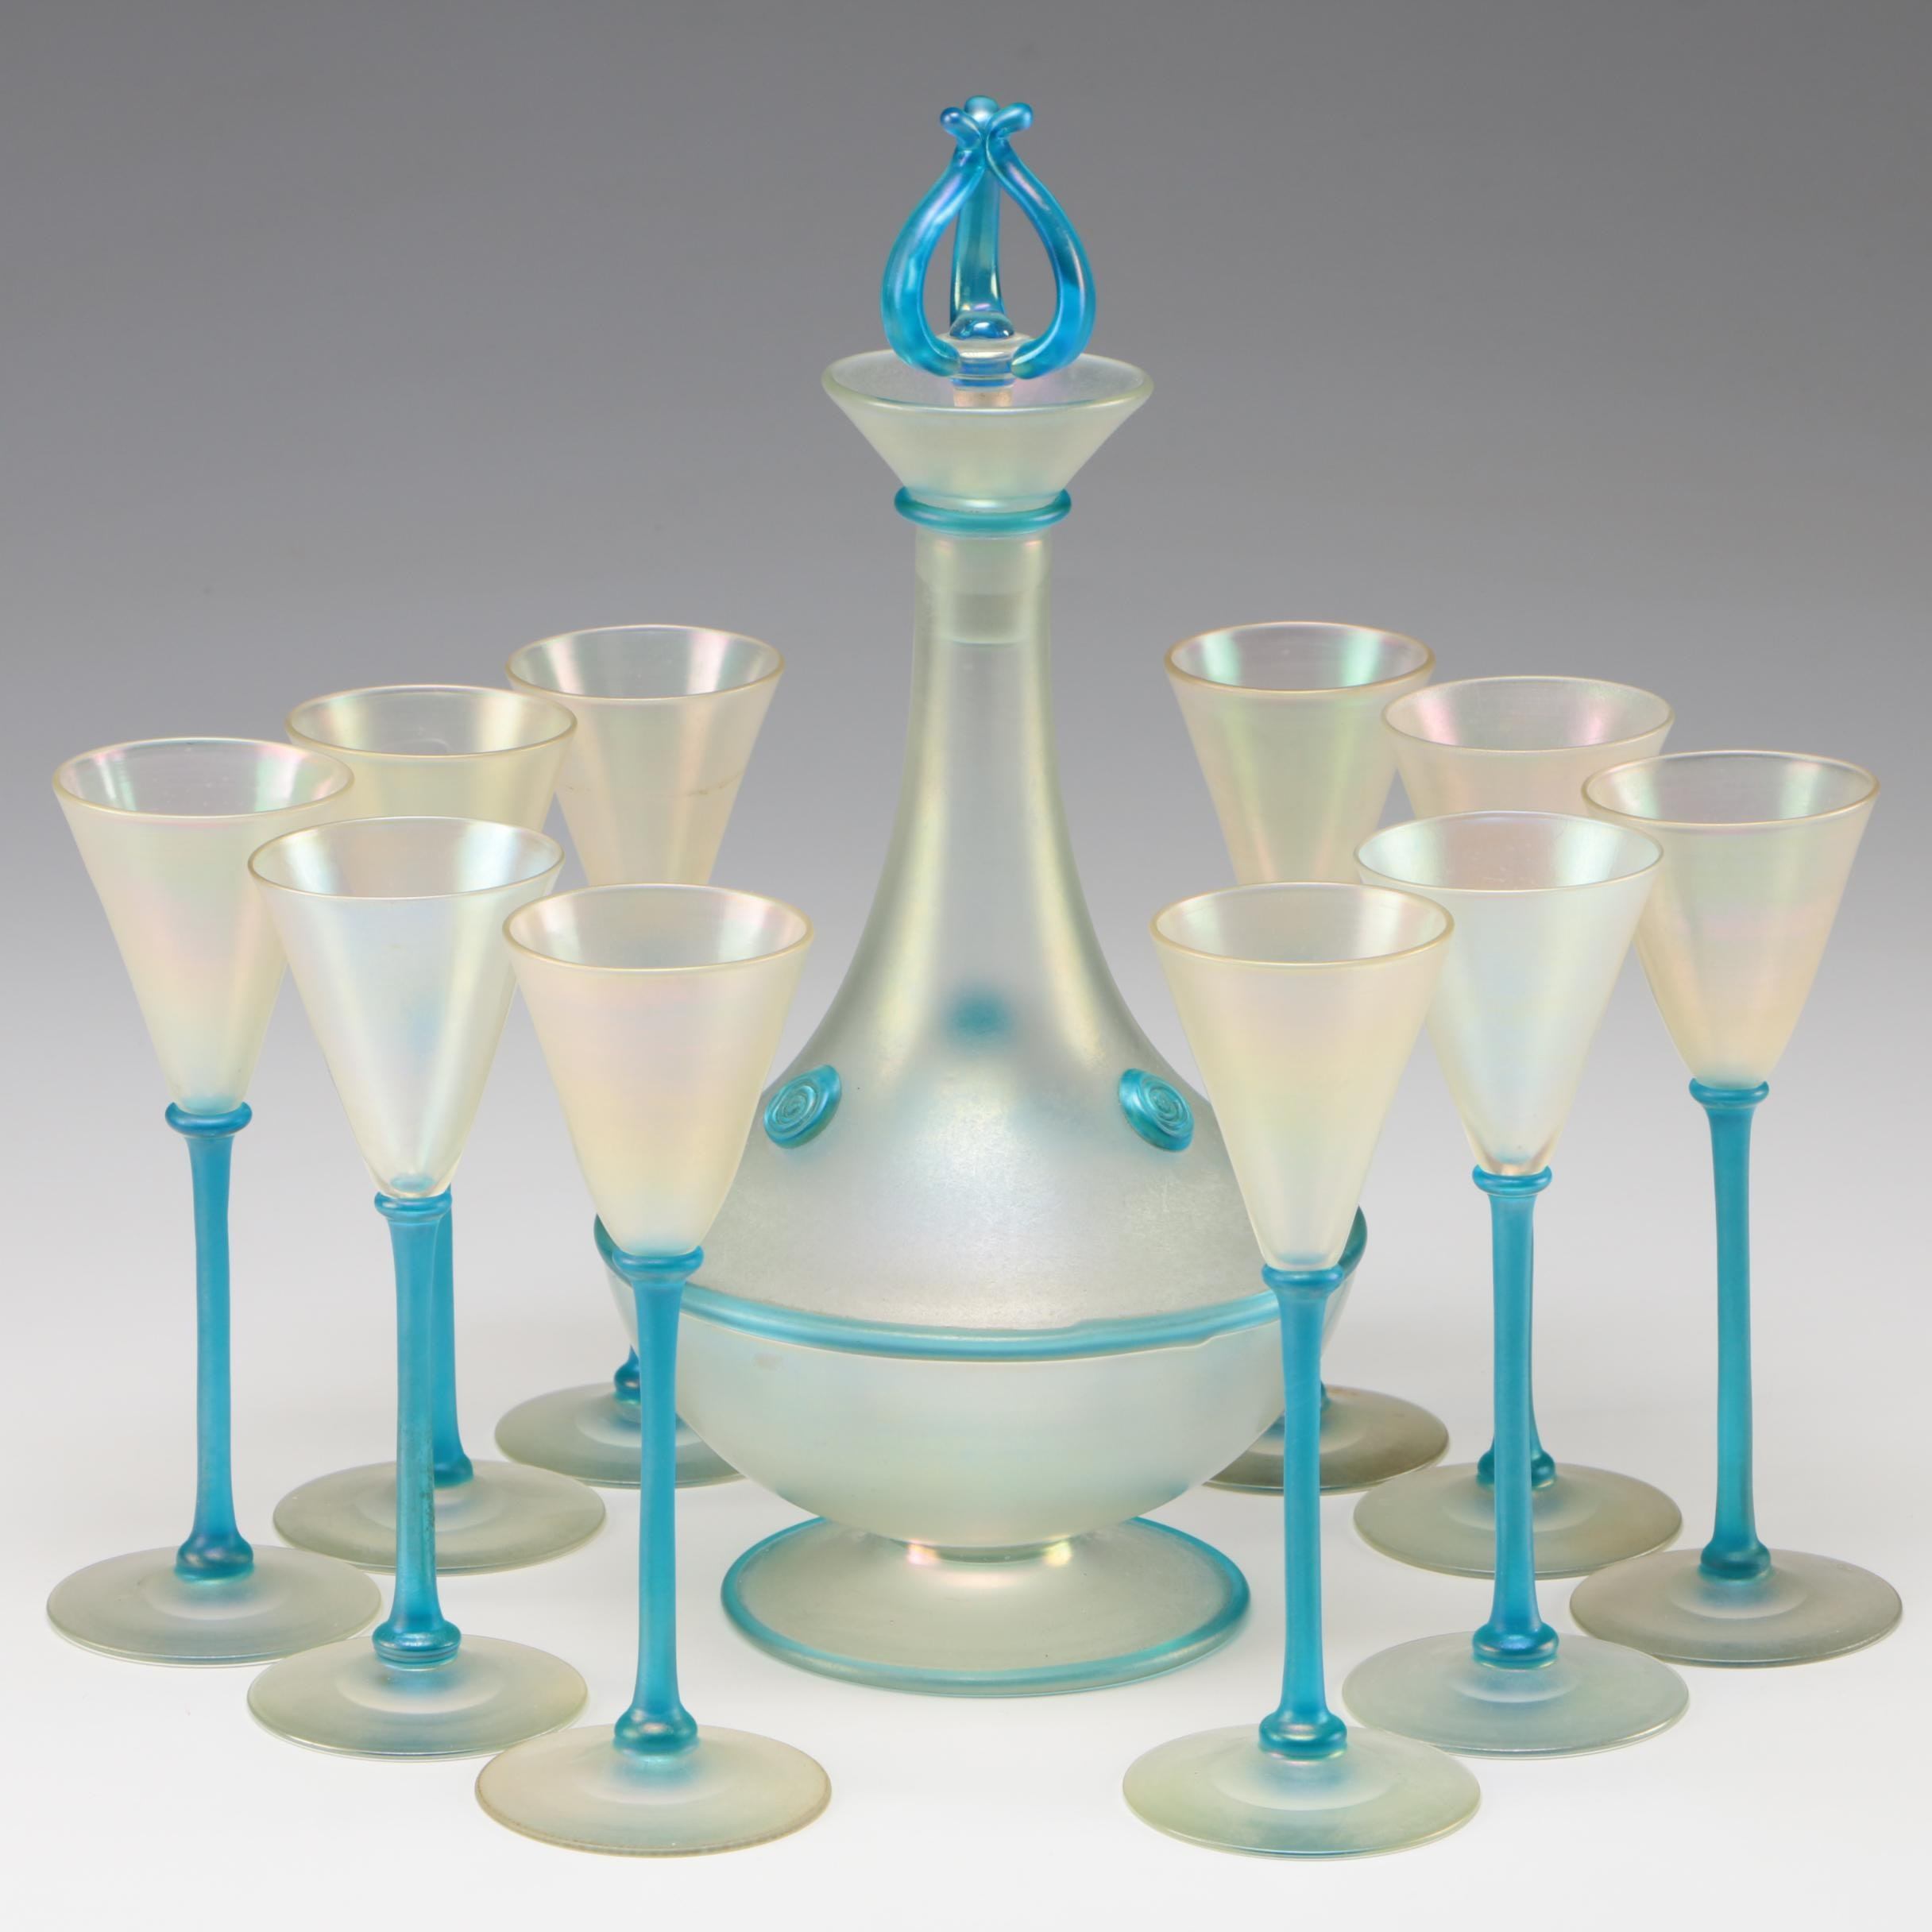 Steuben Verre de Soie Art Glass Decanter and Cups, Early 20th Century